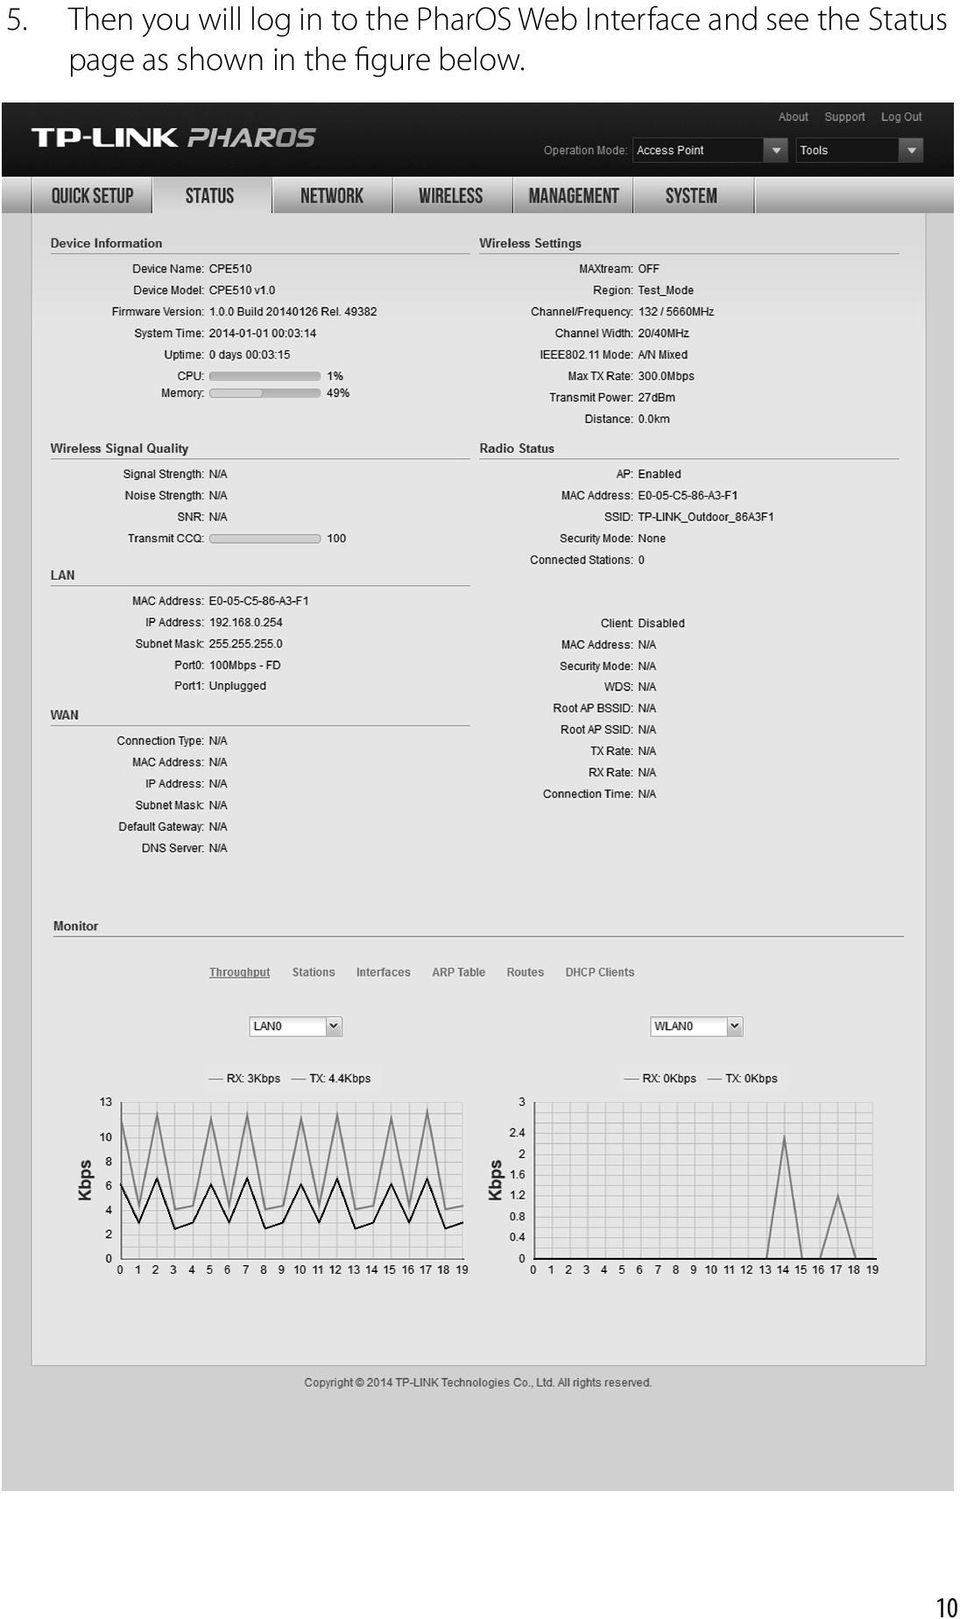 Outdoor Cpe Cpe210 Cpe220 Cpe510 Cpe520 Pdf Tplink Pharos And See The Status Page As